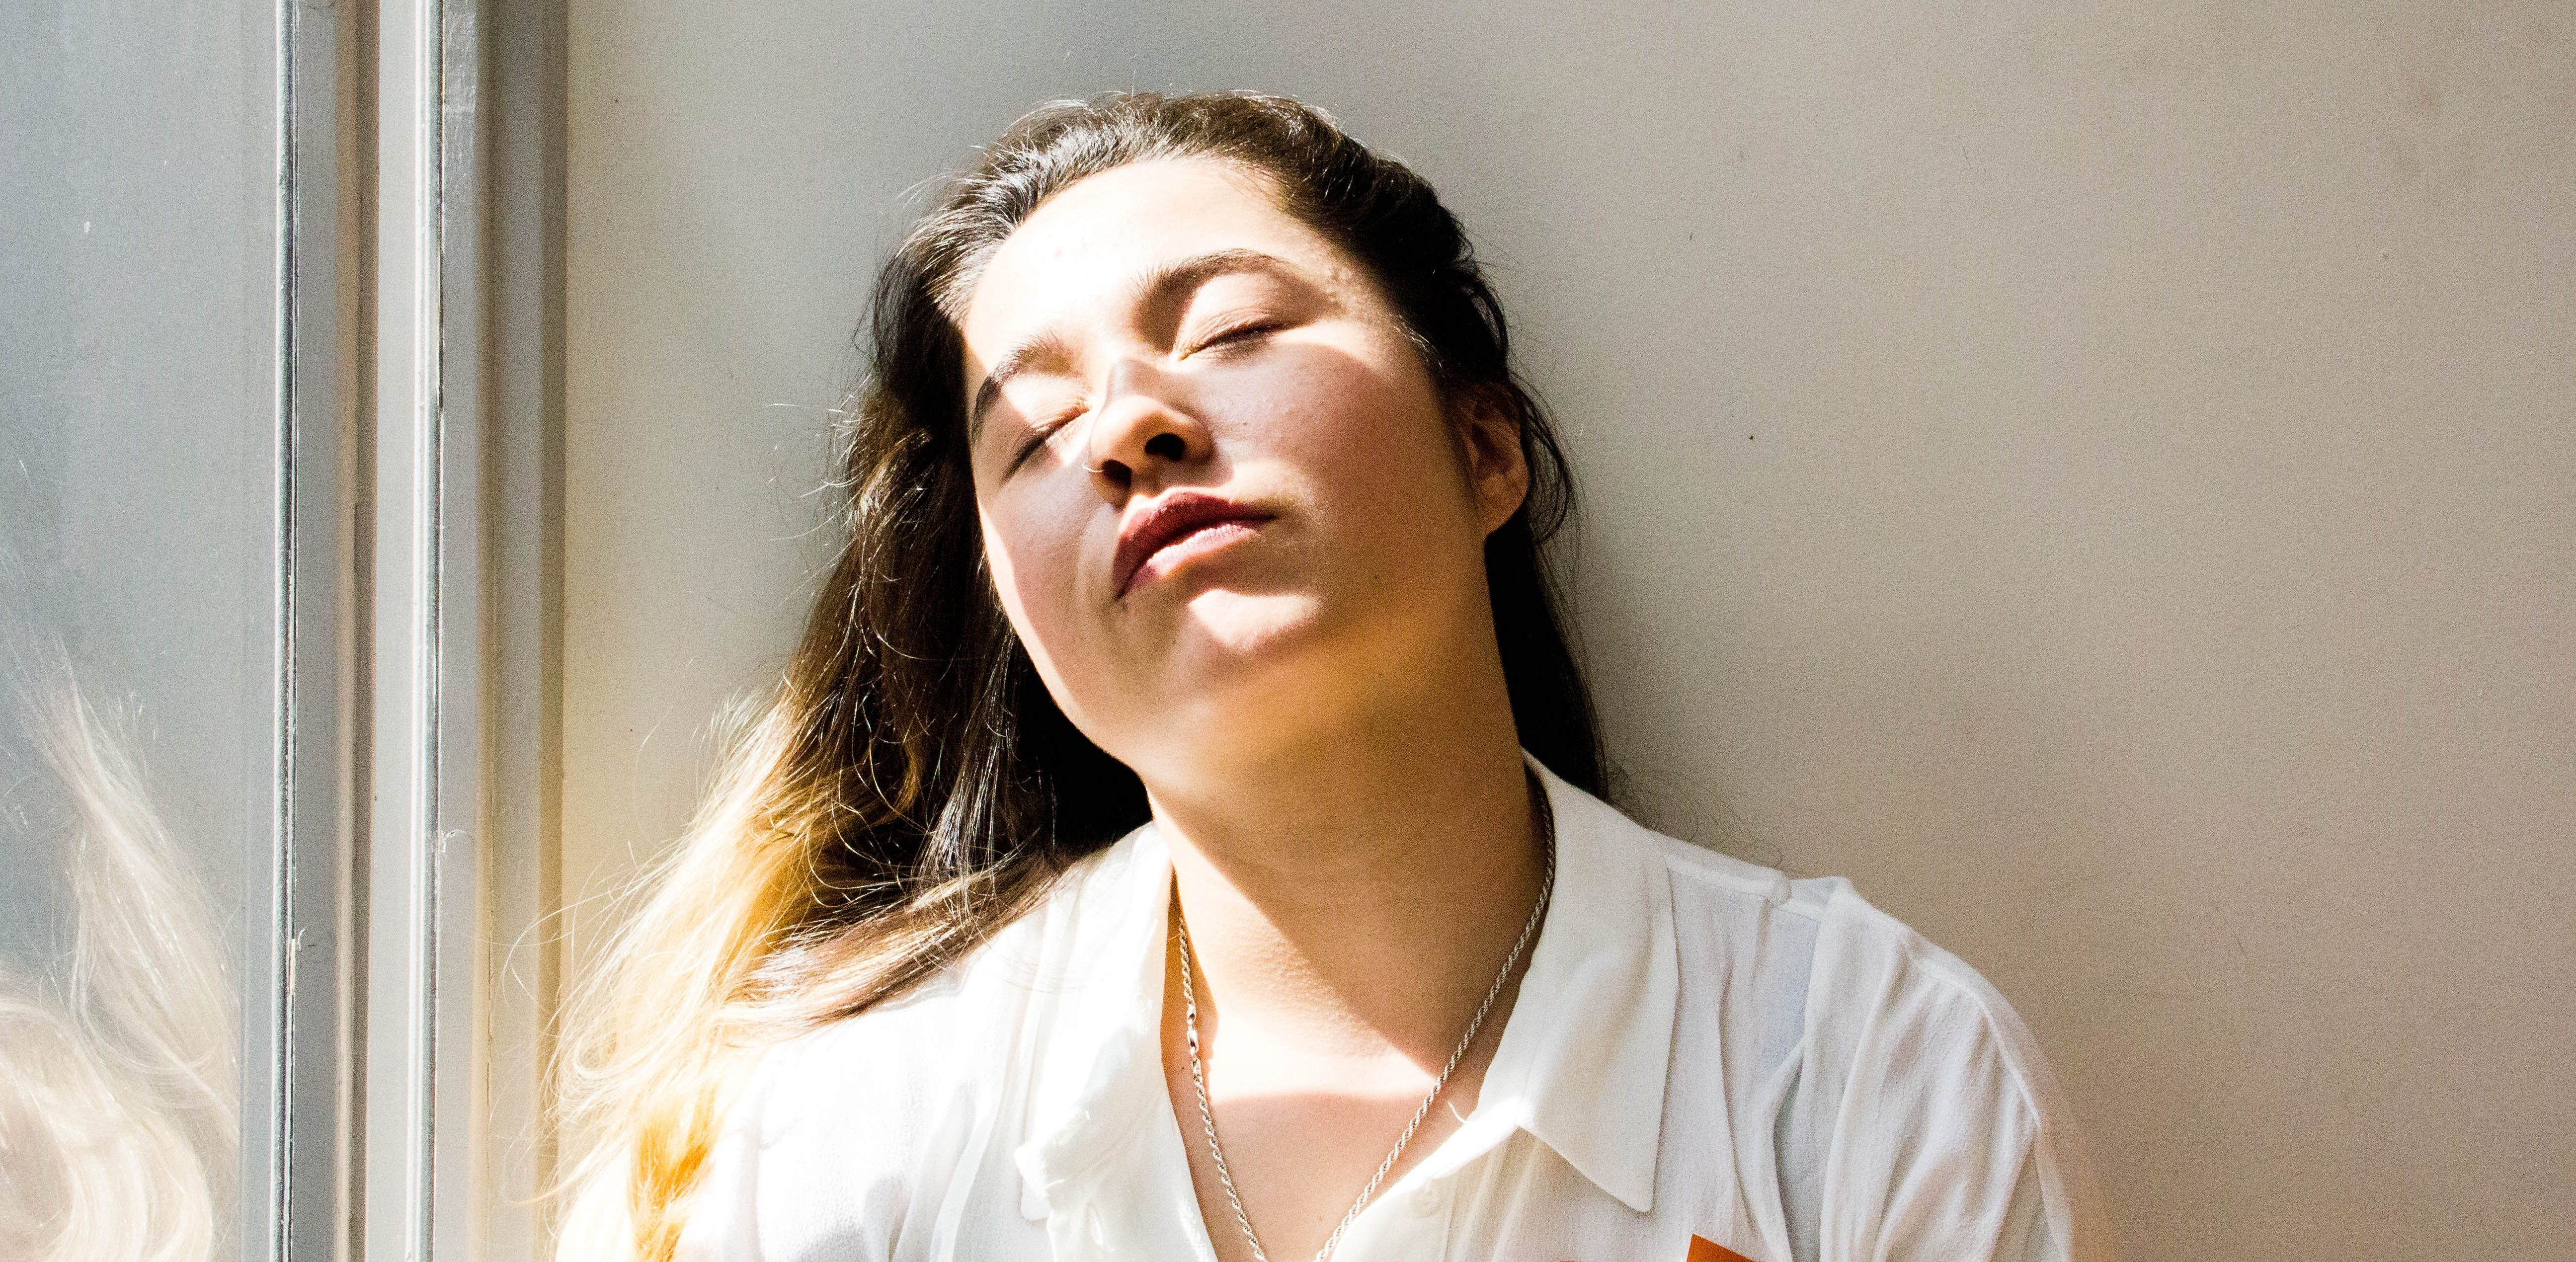 8 Ideas to Help You Function When You're Sleep Deprived